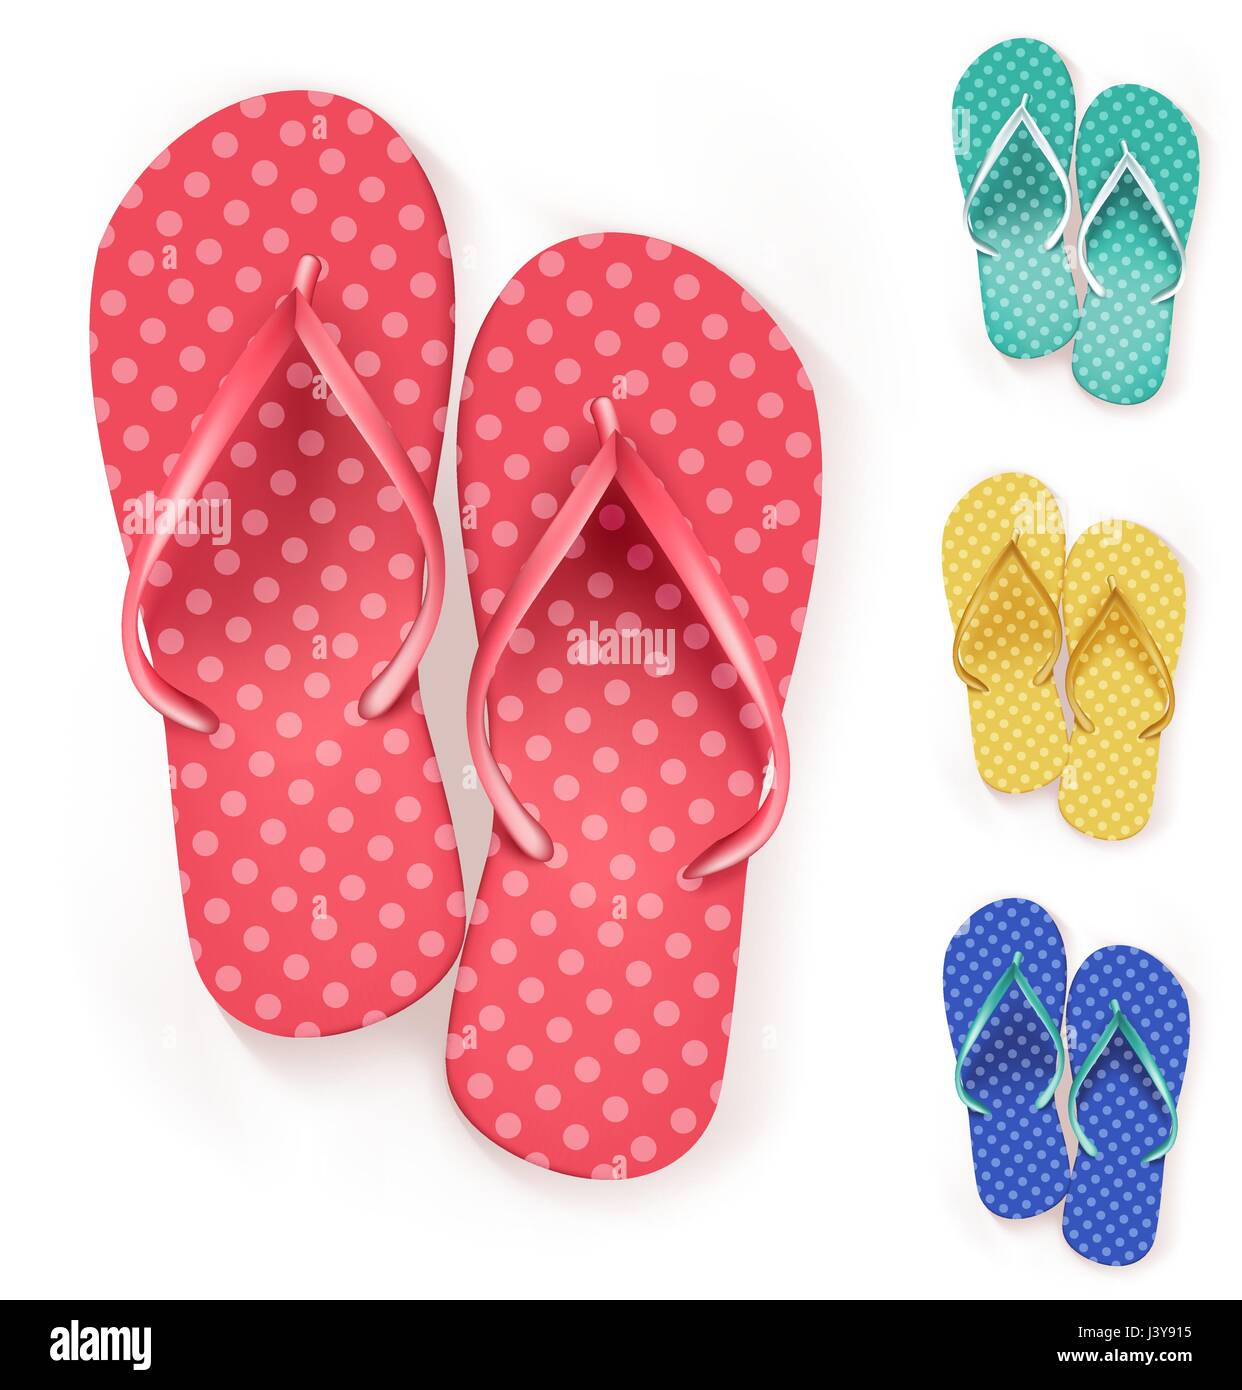 6869a42ddbb5 Vector Set of Colorful Beach Slippers Polka Dots Flip Flops for Summer  Vacation and Outdoor Get